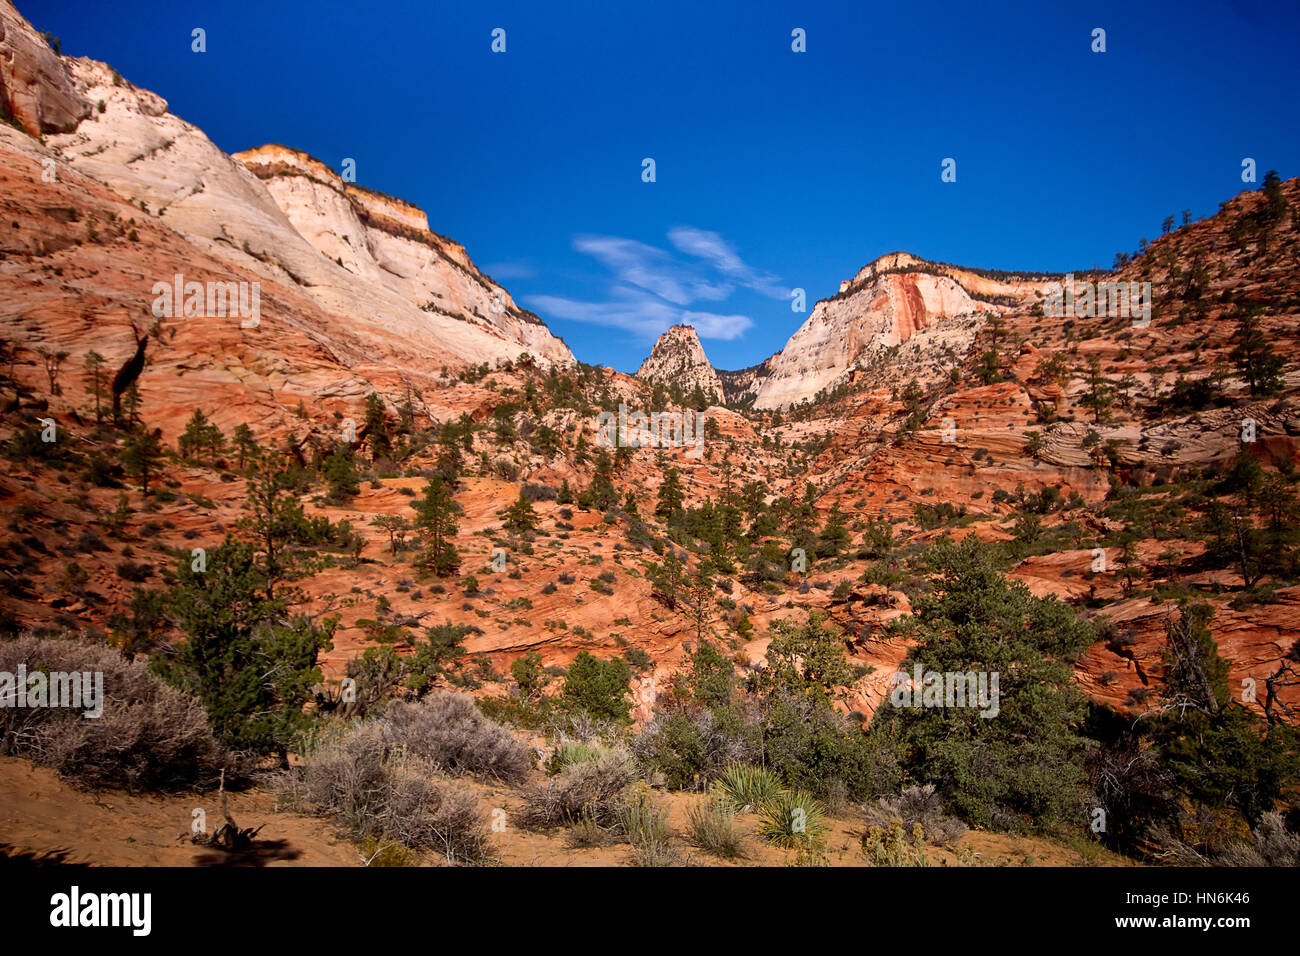 Red Rock Mountains in Zion National Park, Springville, Utah, USA - Stock Image